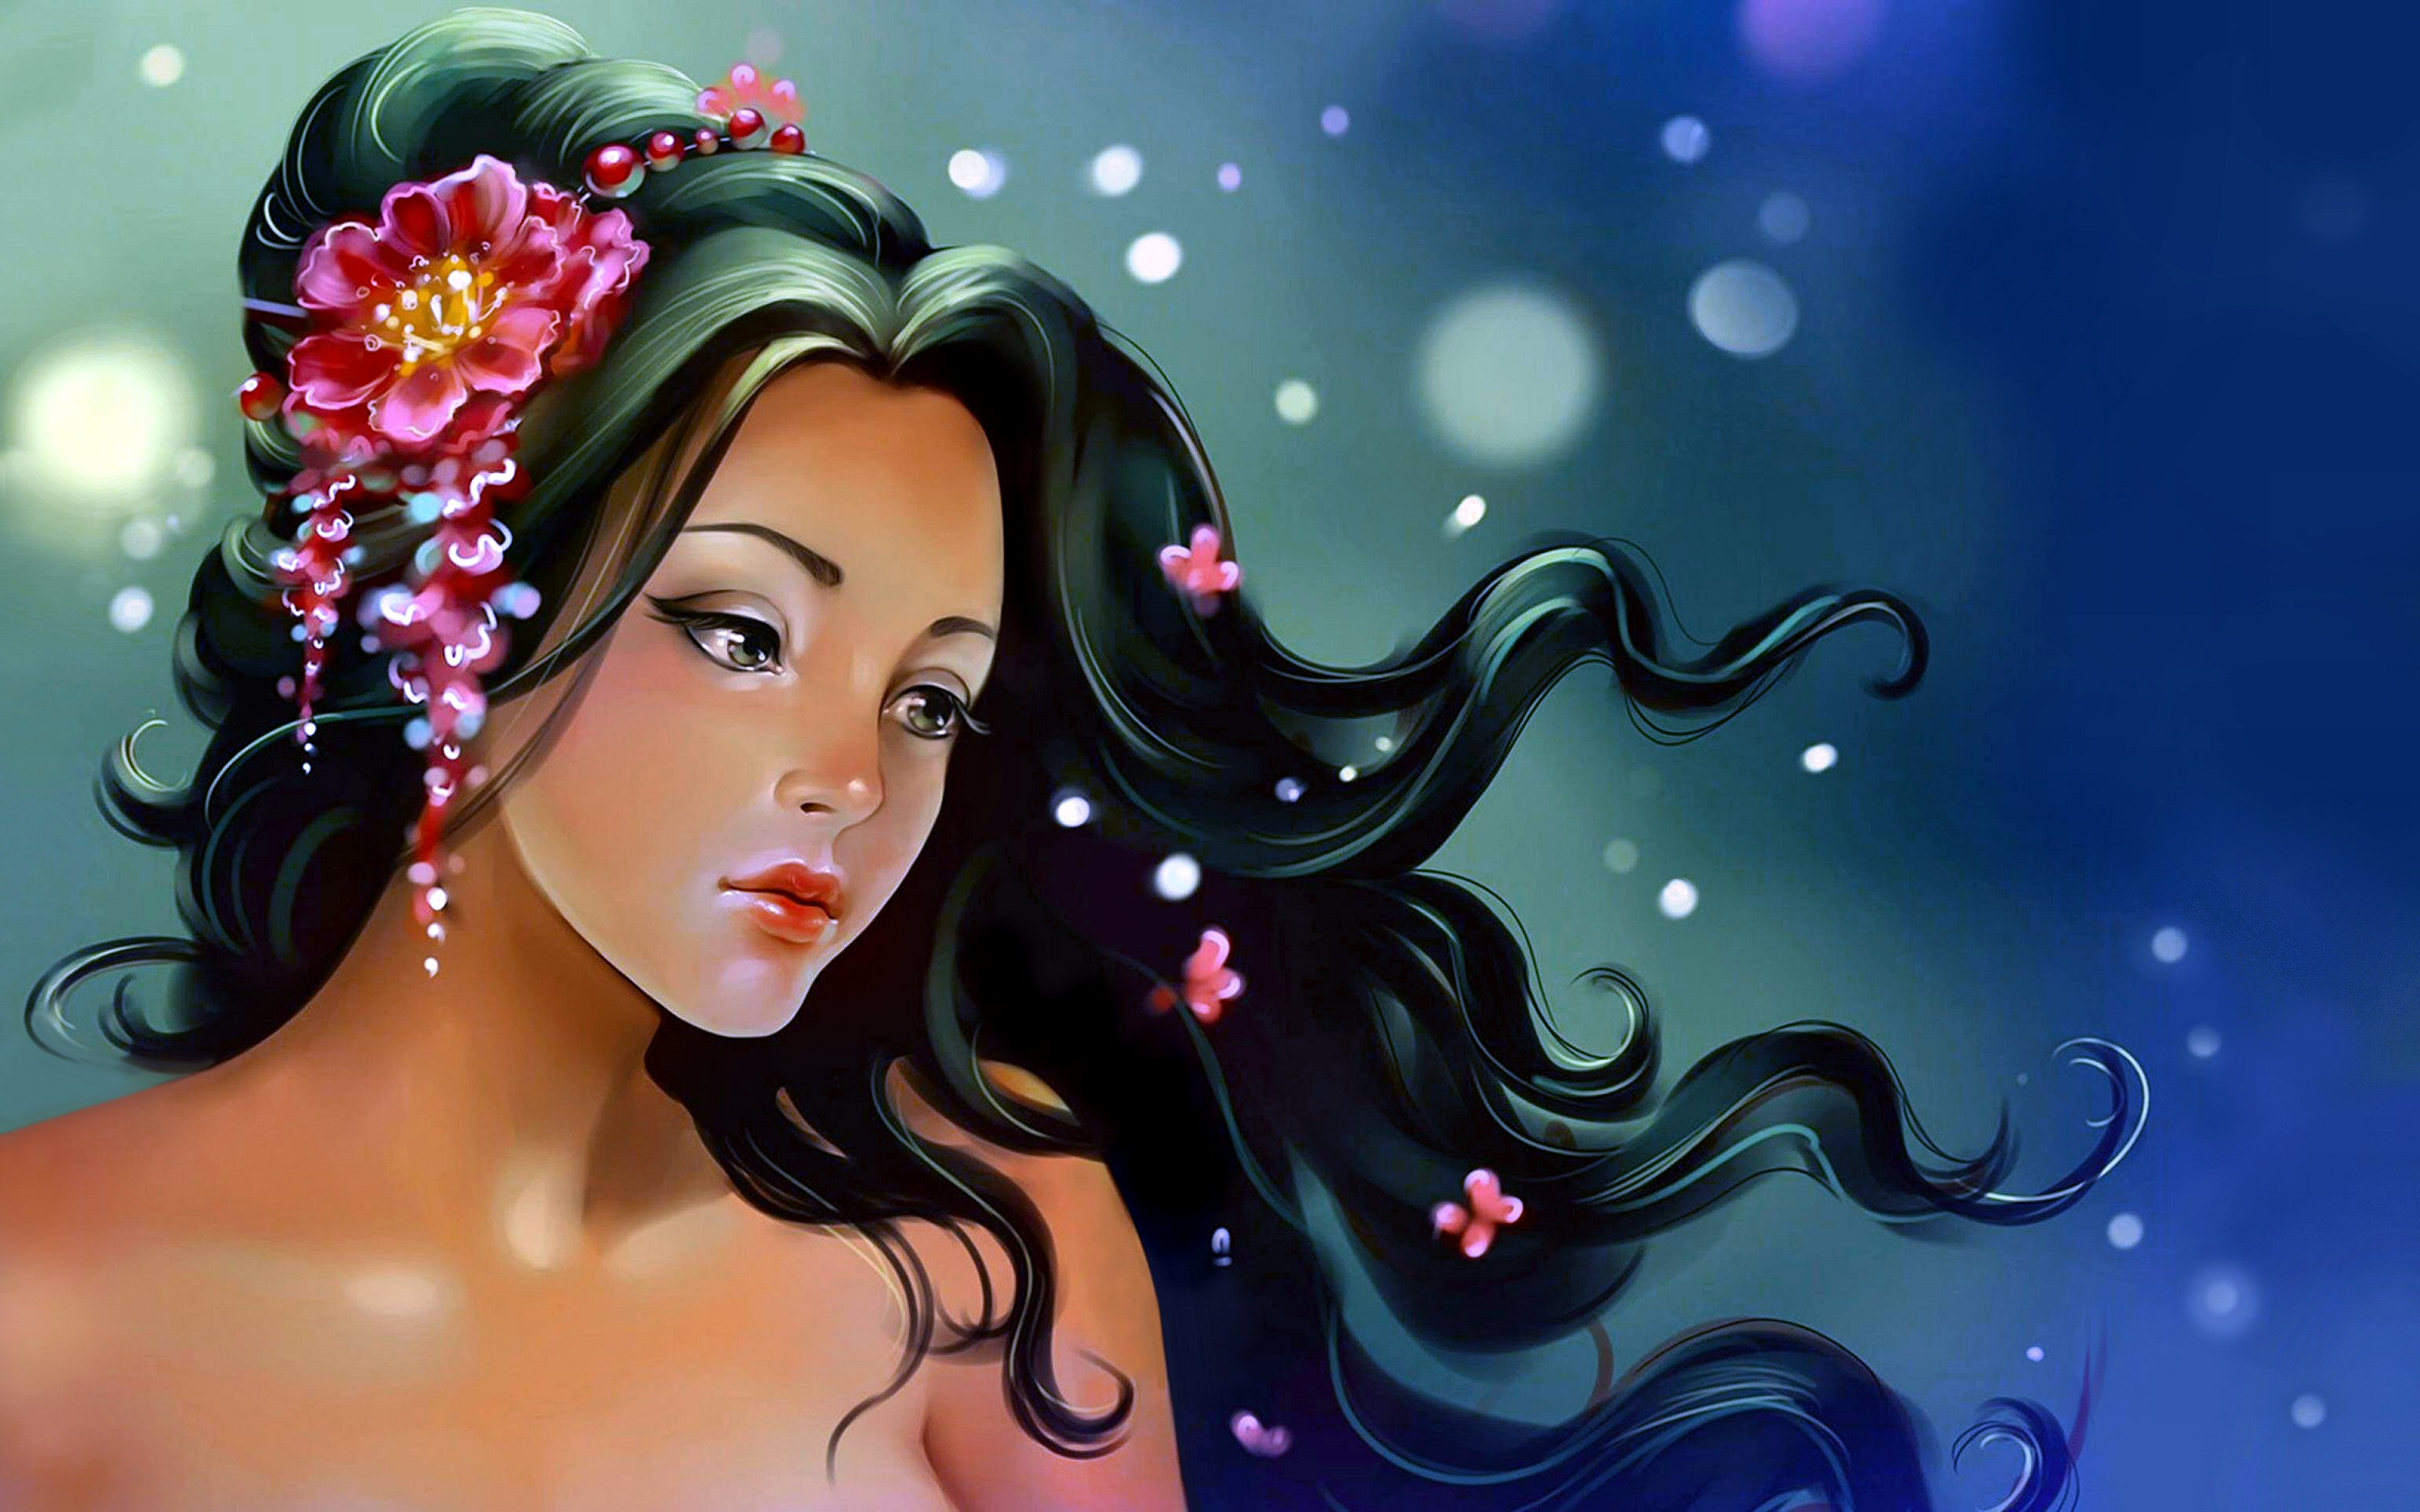 4276 women hd wallpapers background images wallpaper abyss dolphin fantasy room vase woman hd wallpaper background image id335269 voltagebd Images